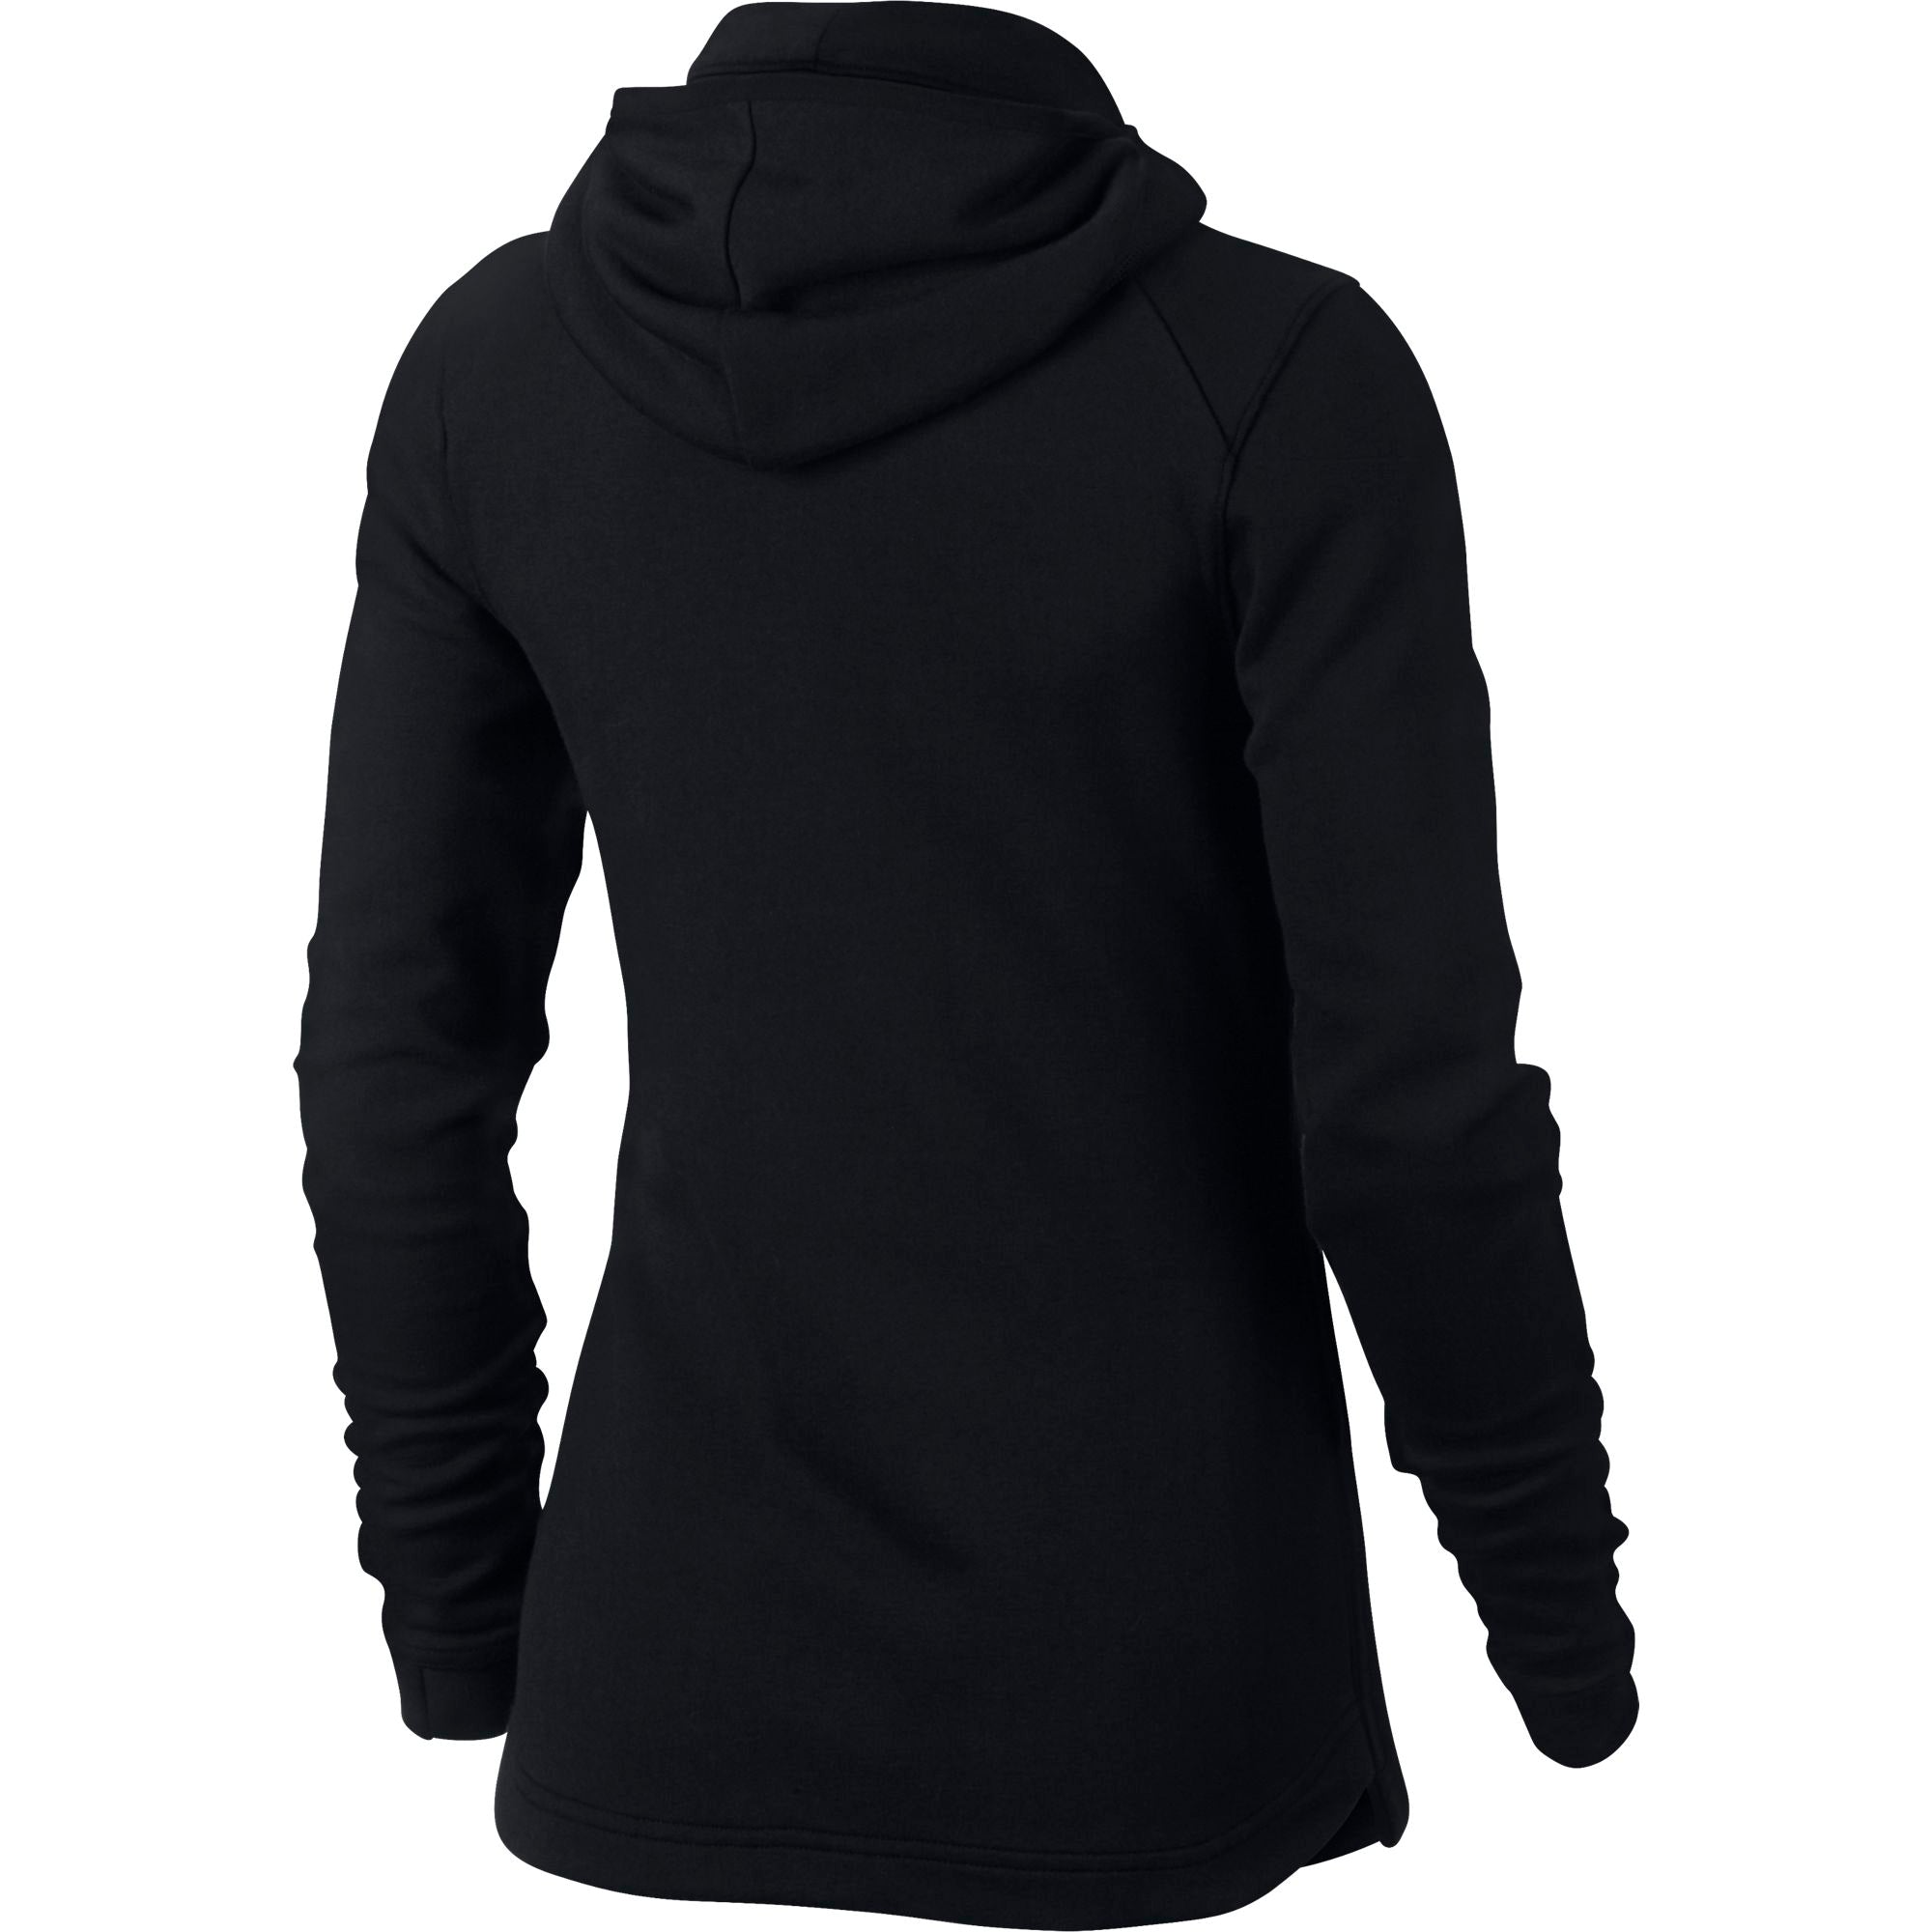 Nike Womens Basketball Dry Showtime Hoodie - Black/White